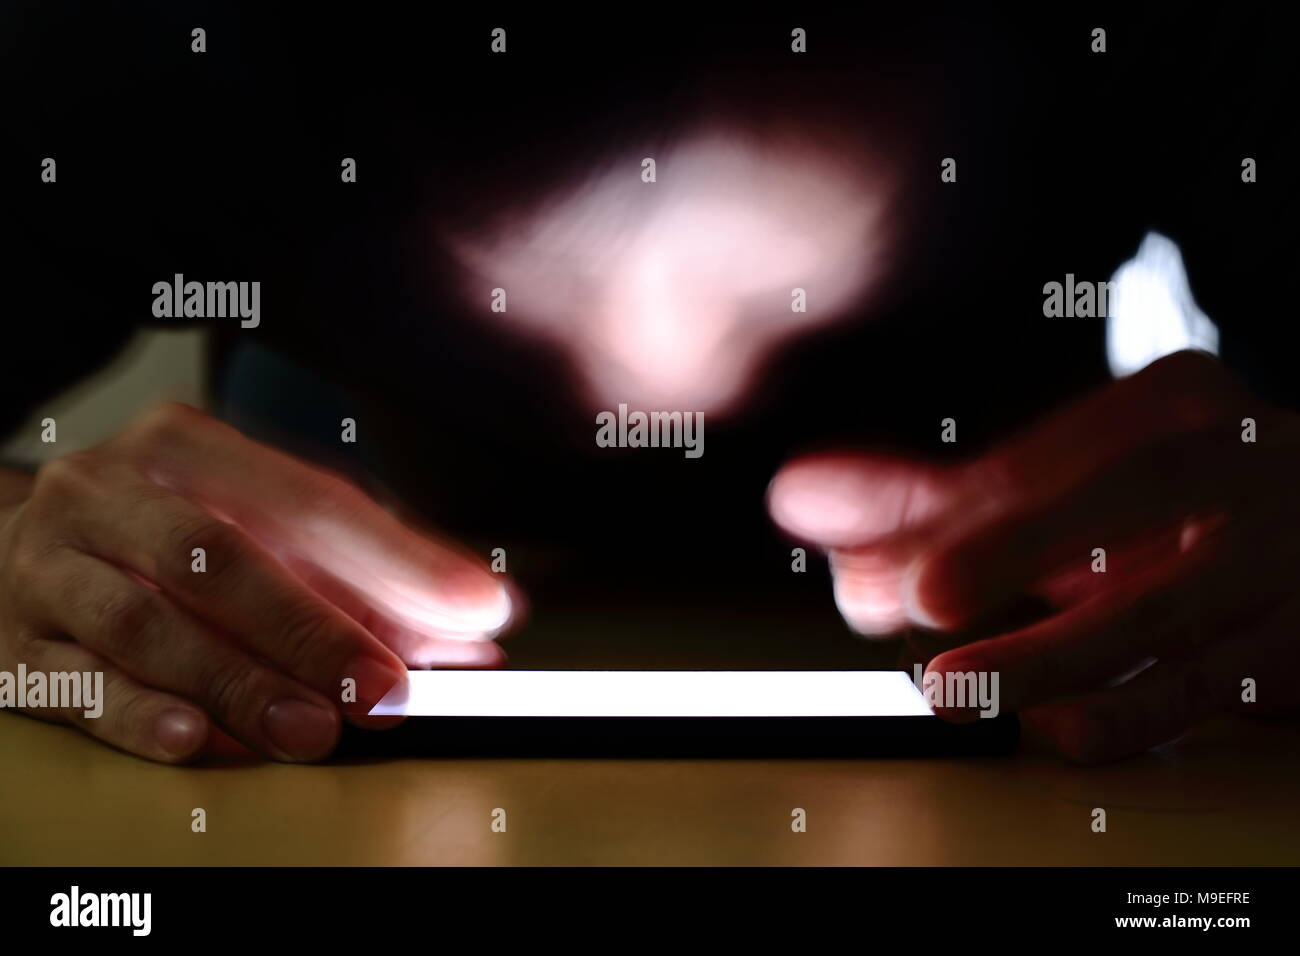 smartphone addiction social media trap. A caucasian young man pressing smartphone in a darkroom. a long exposure shot focused on the smartphone. - Stock Image